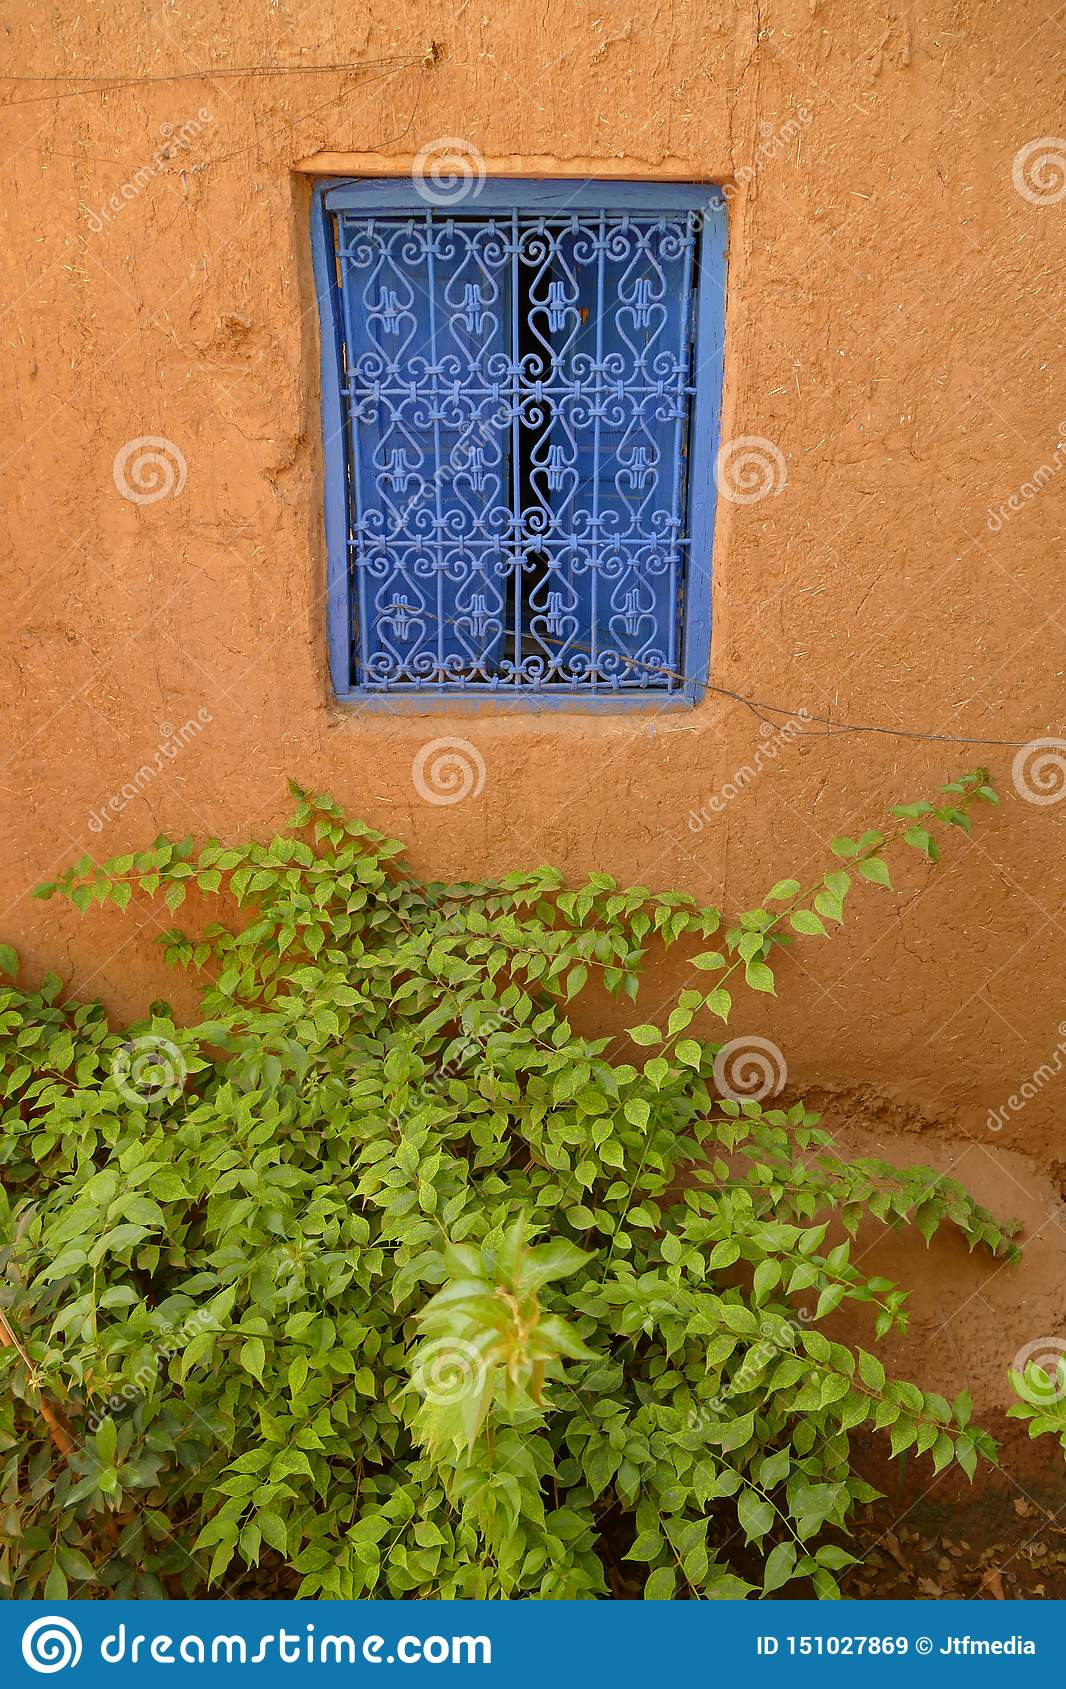 Green plant underneath a blue window with a decorative blue metal grid in Marrakech